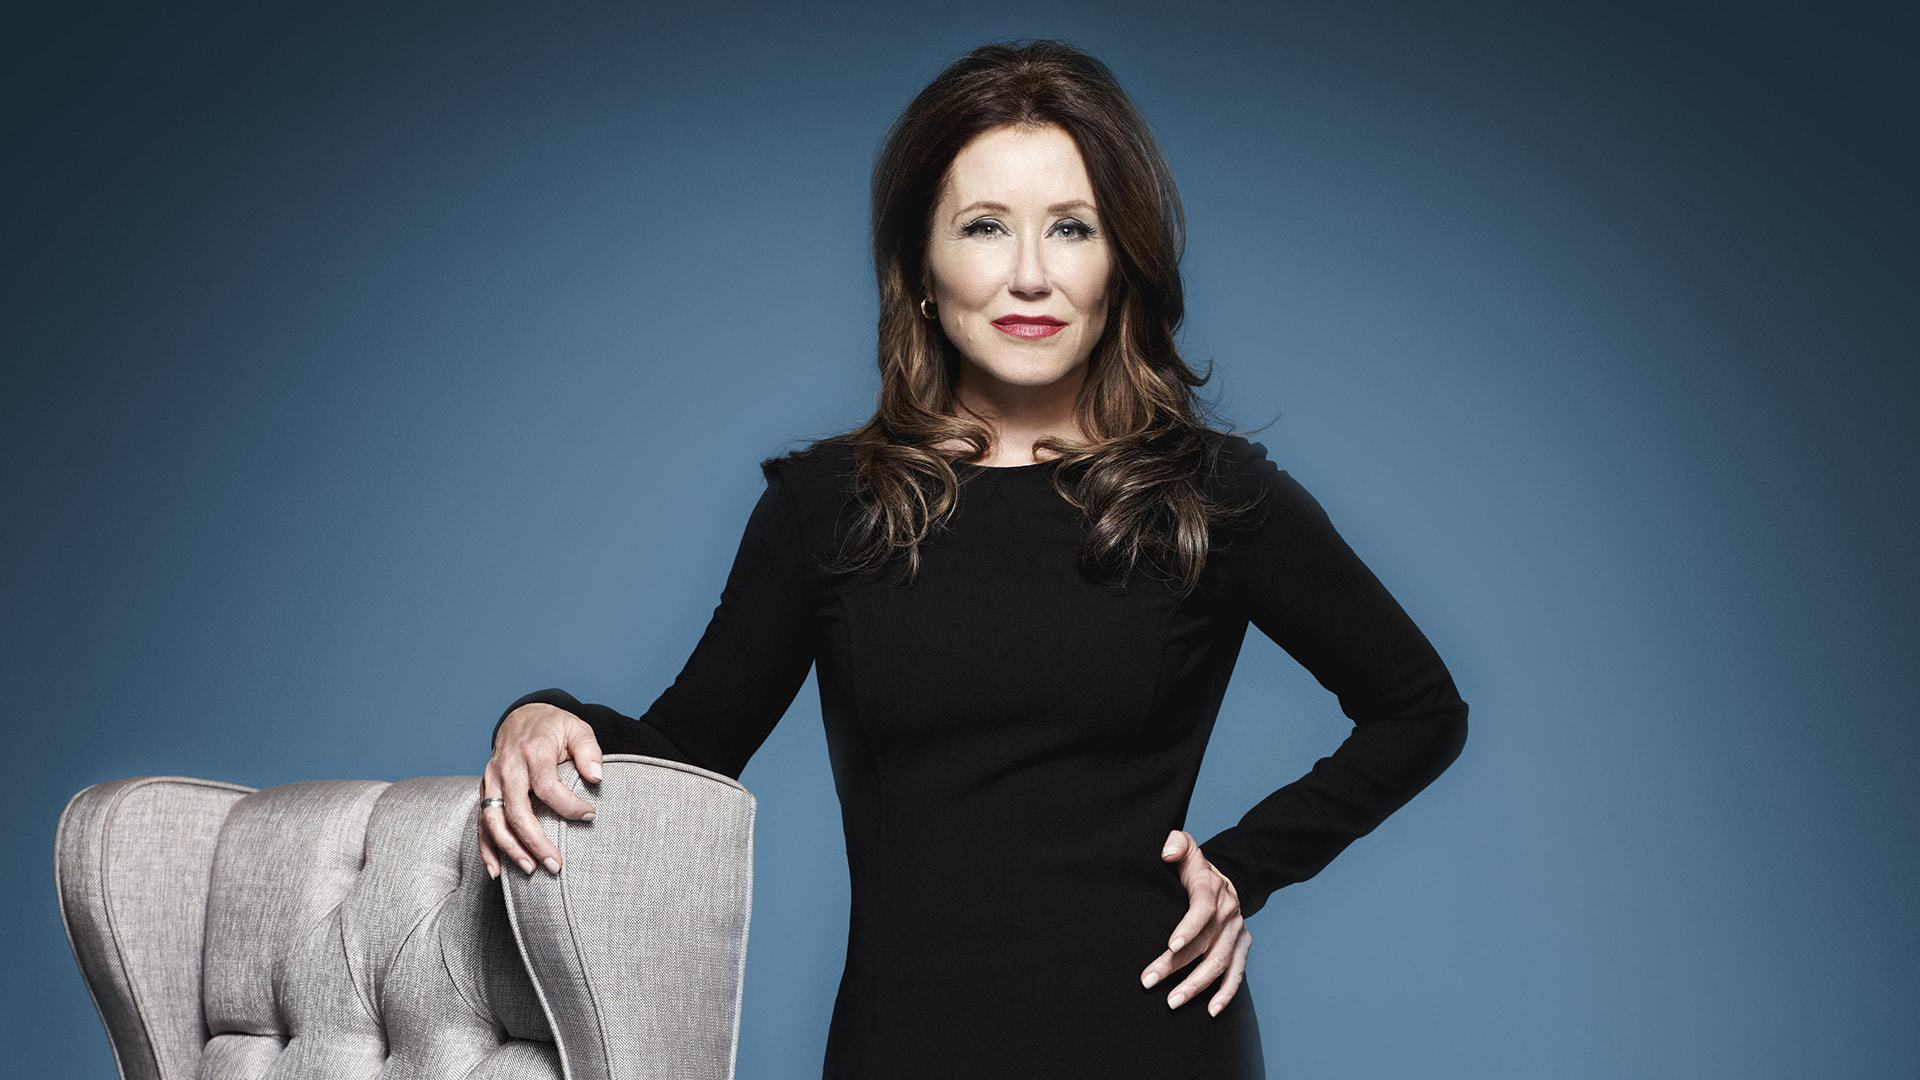 Mary Mcdonnell Computer Wallpaper